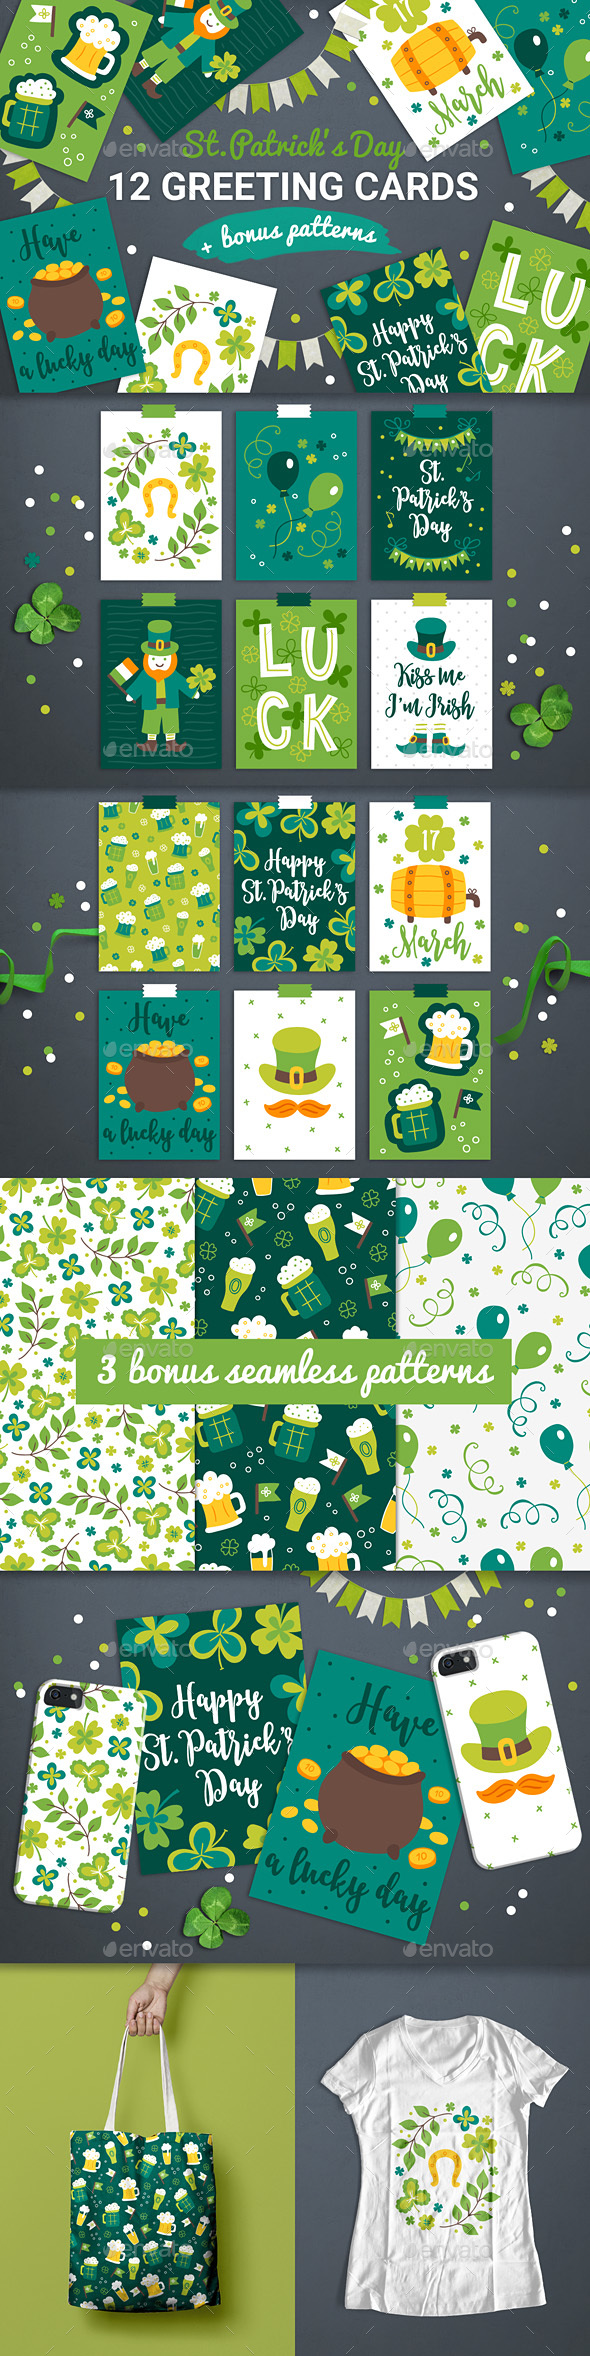 12 Patrick Cards + 3 Seamless Patterns - Miscellaneous Seasons/Holidays